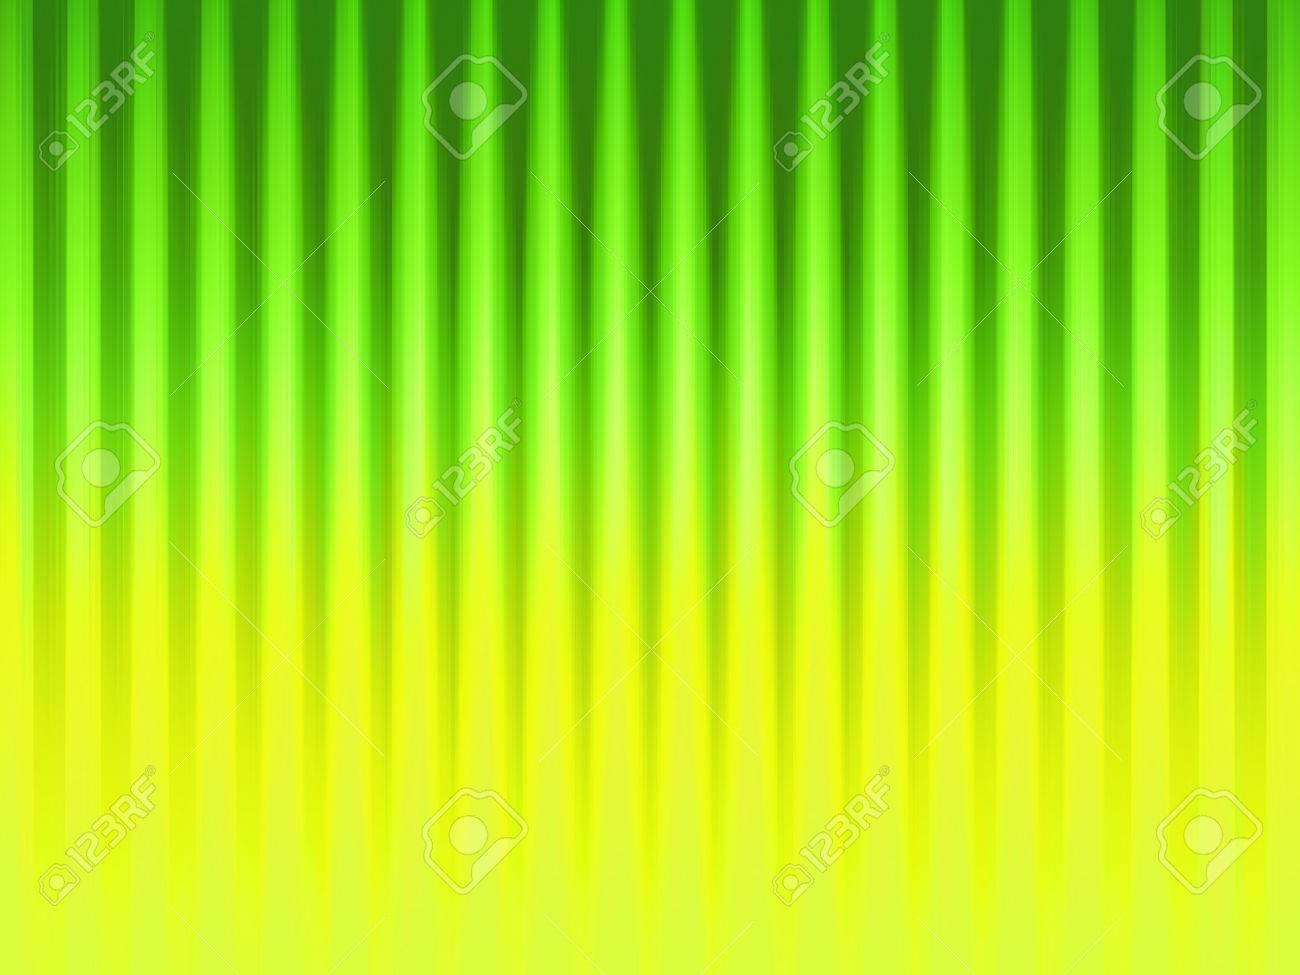 Background image transition - Green And Yellow Background With A Smooth Transition Of Color Stock Photo 38666808